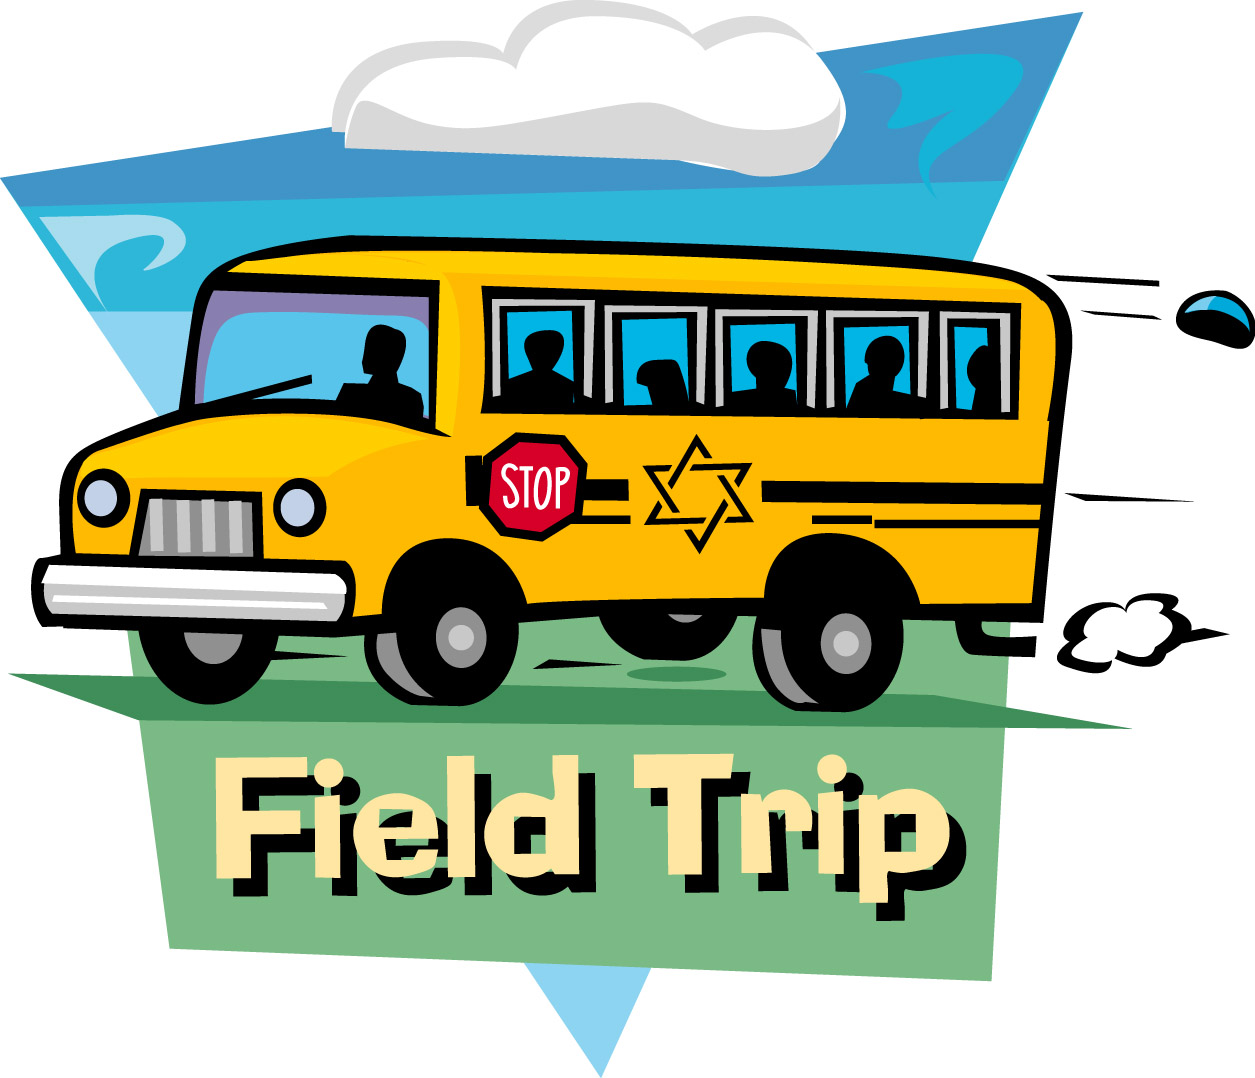 Field Trip Clipart - Clipart library